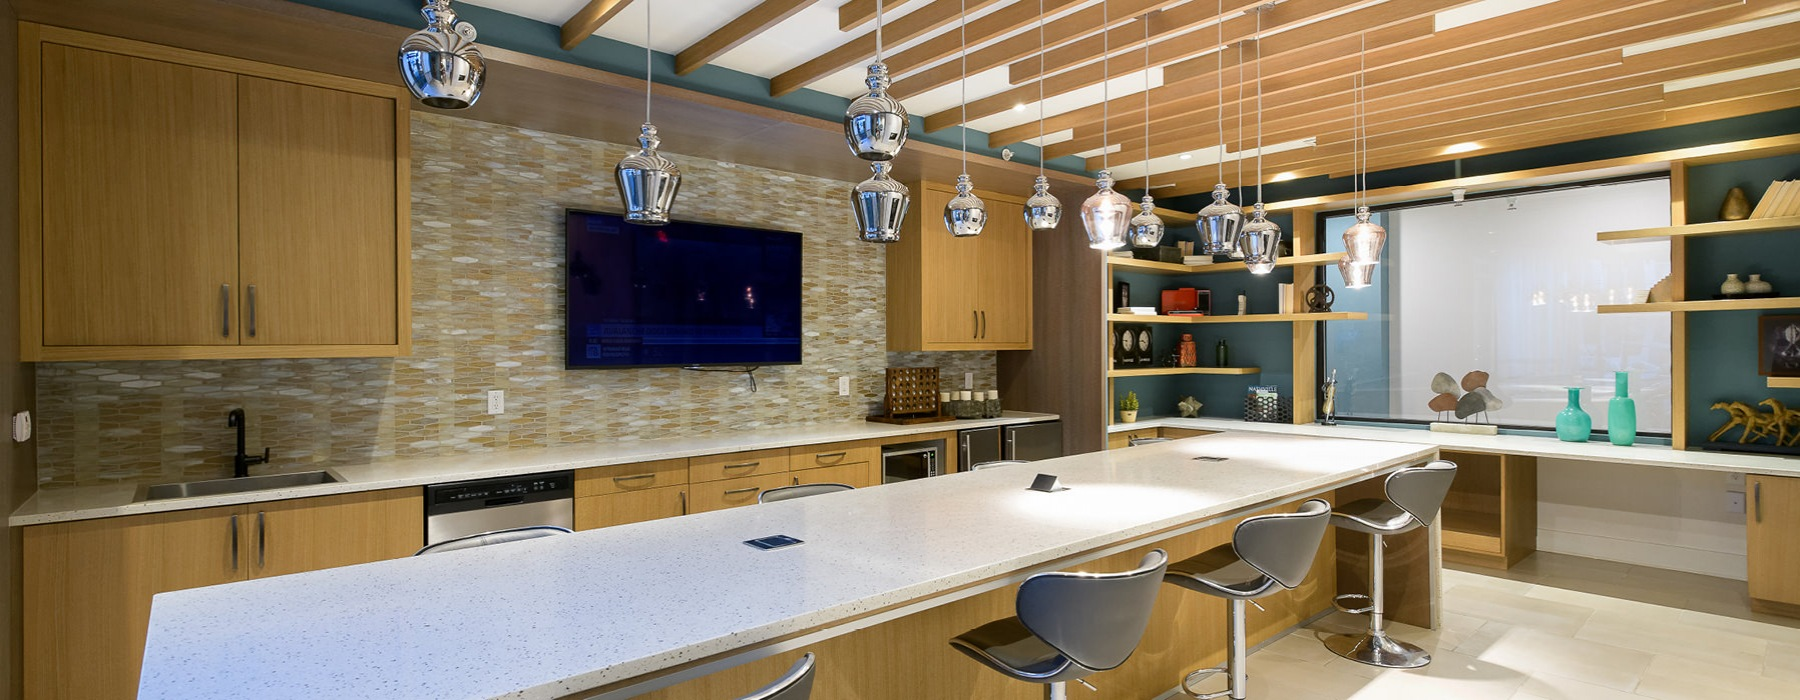 Clubhouse bar with hanging lighting